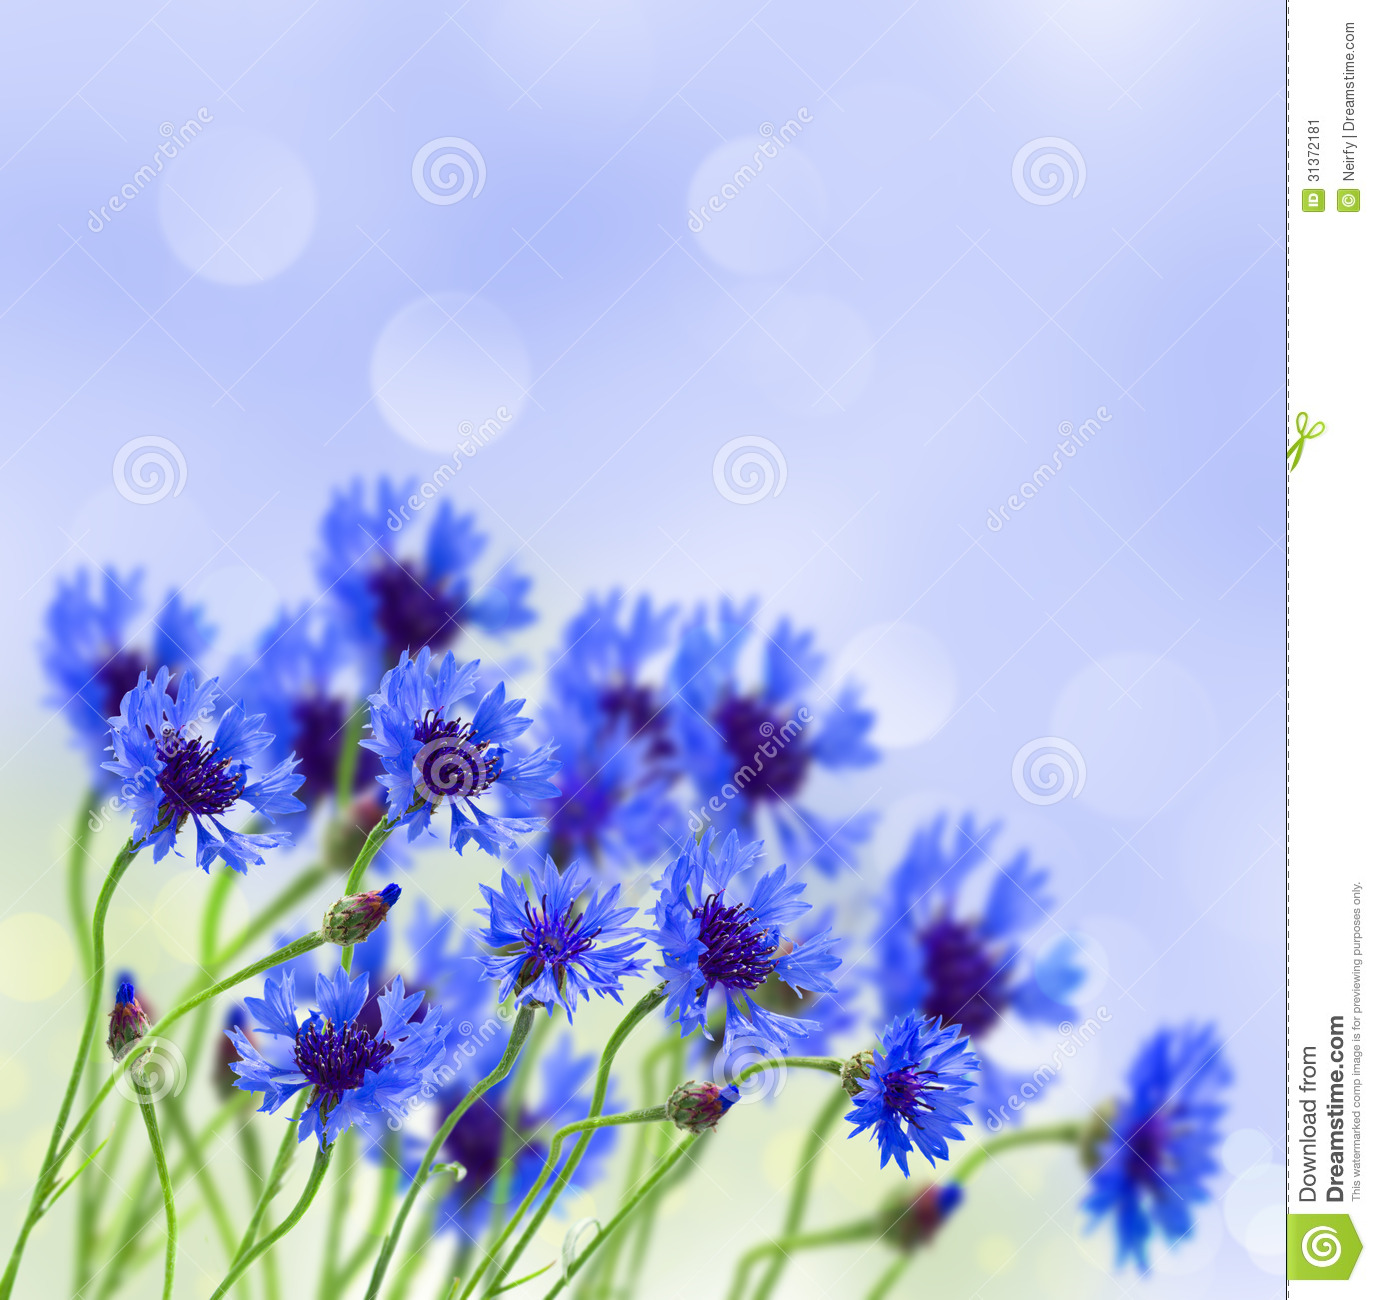 blue corn flower in field stock image